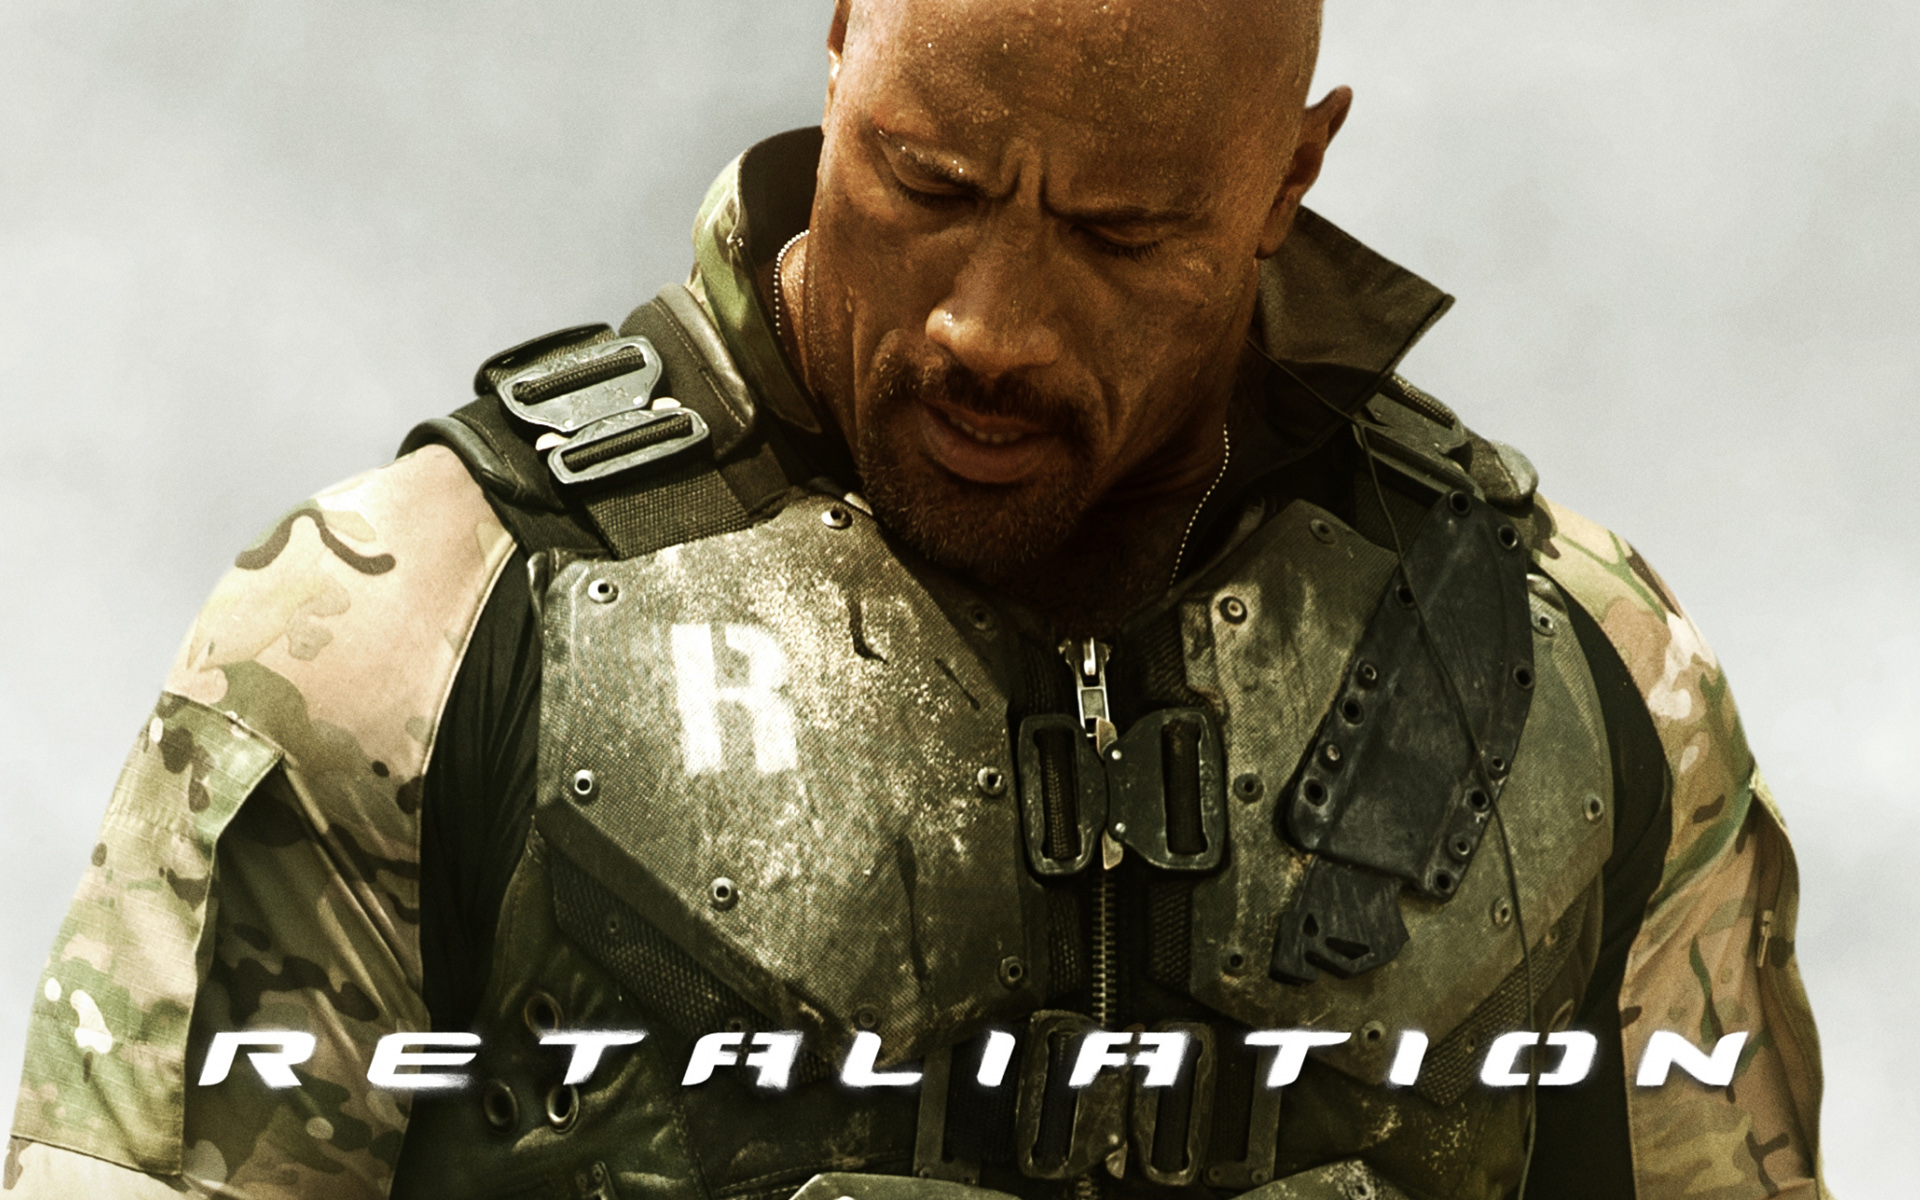 The Rock in GI Joe 2 Retaliation